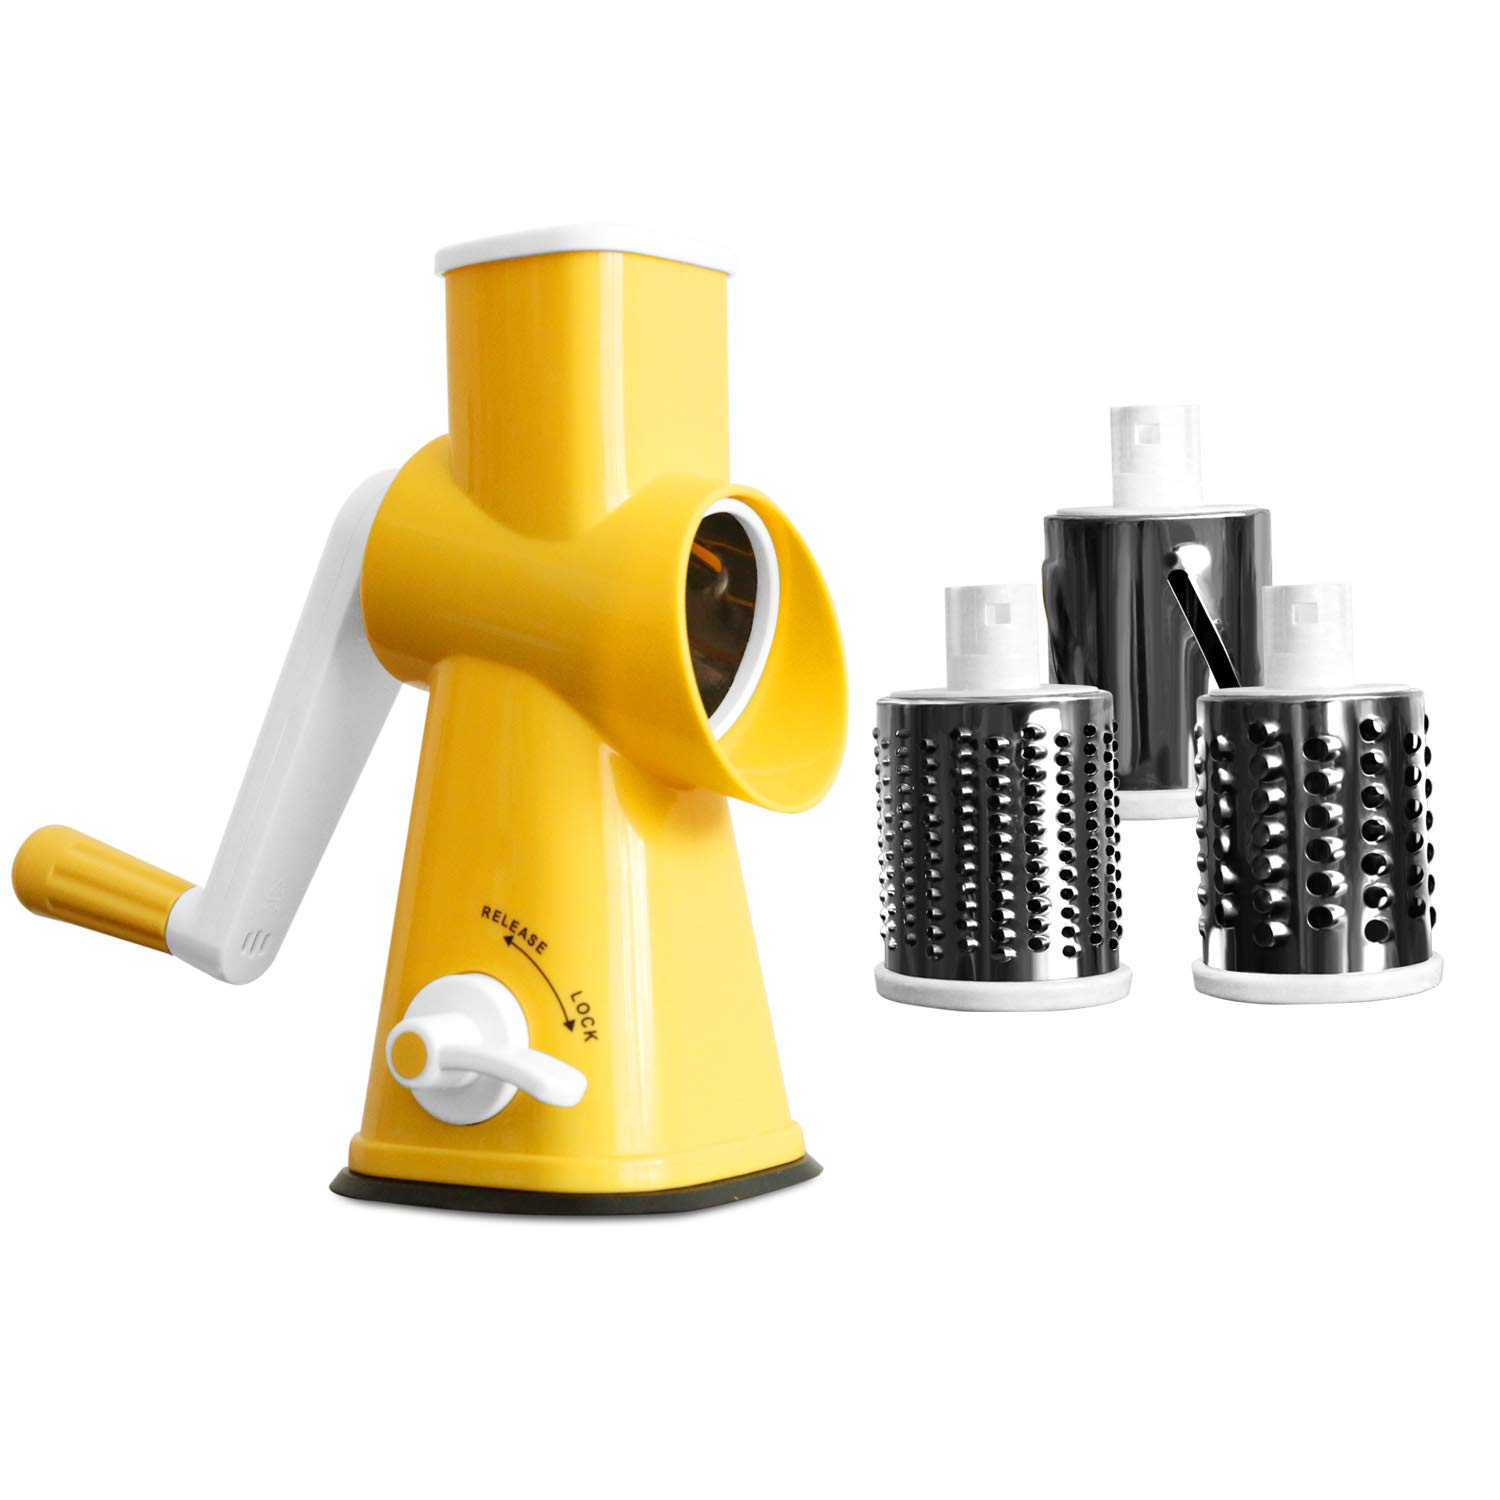 Rotary Cheese Grater Round Mandolin Slicer Vegetable Shredder Cutter Nut Chopper with 3 Interchangeable Shape Stainless Steel Drums